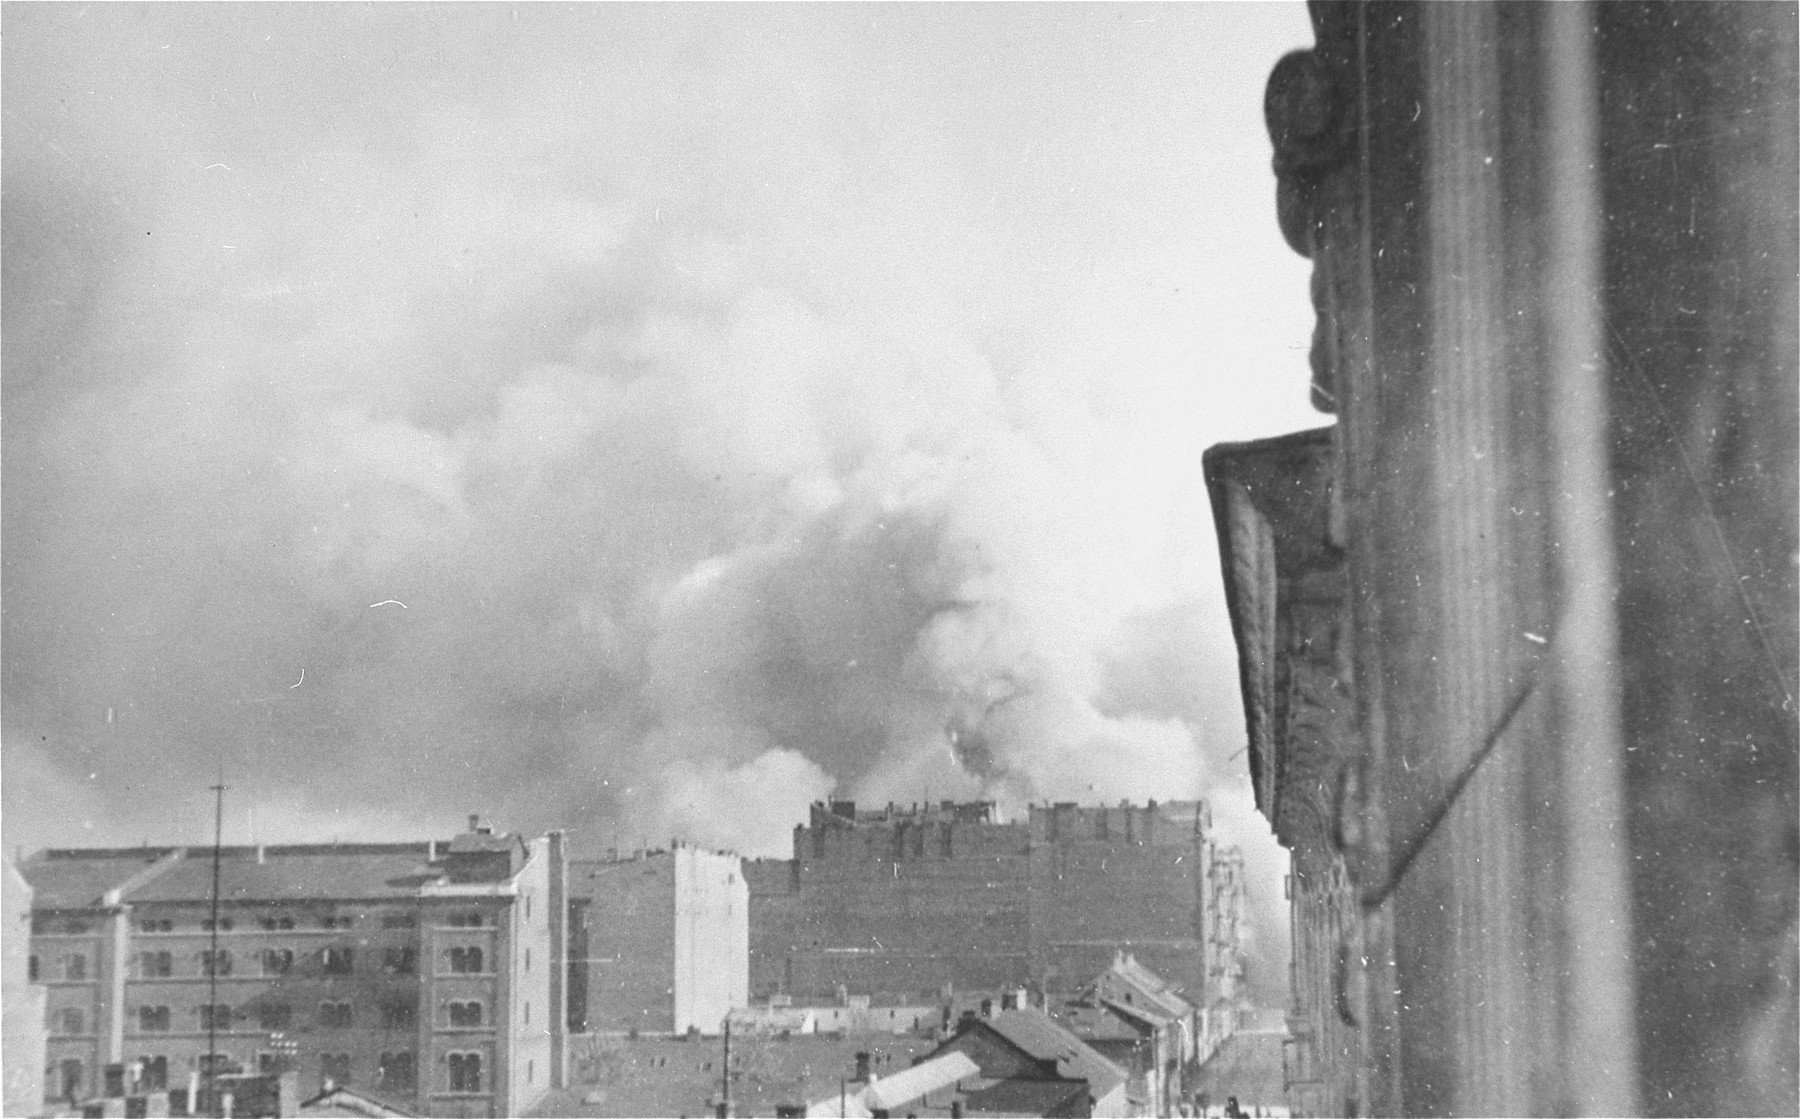 Smoke rises from buildings razed by the SS during the suppression of the Warsaw ghetto uprising.  The view is from Walicow Street looking south.